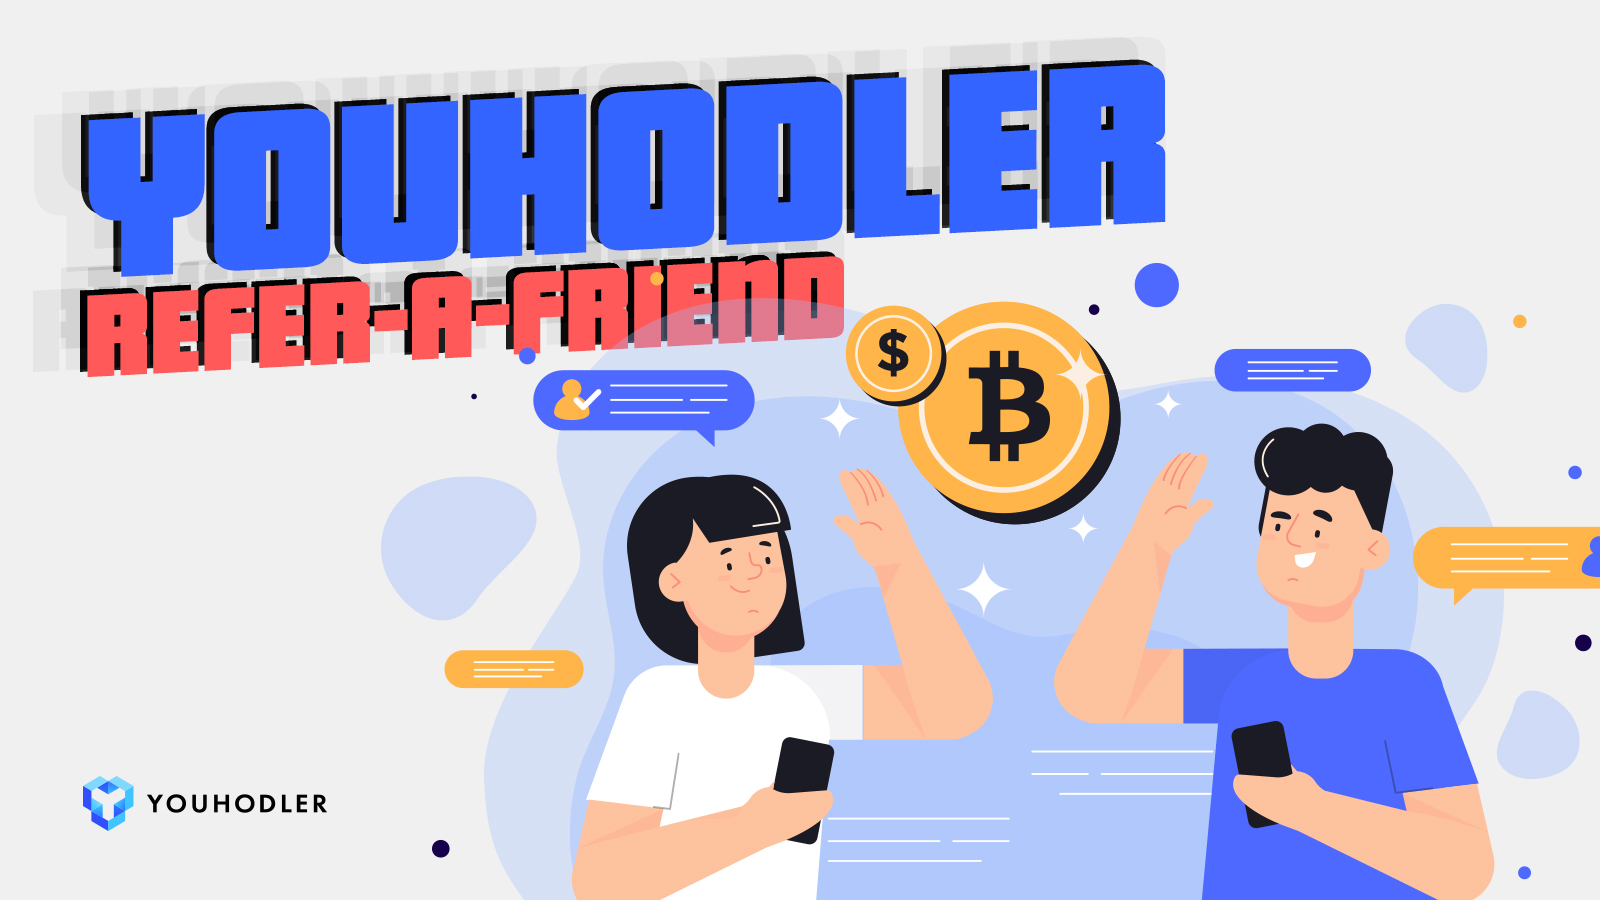 YouHodler has a new referral program! See how you can earn $50 and more inside this article